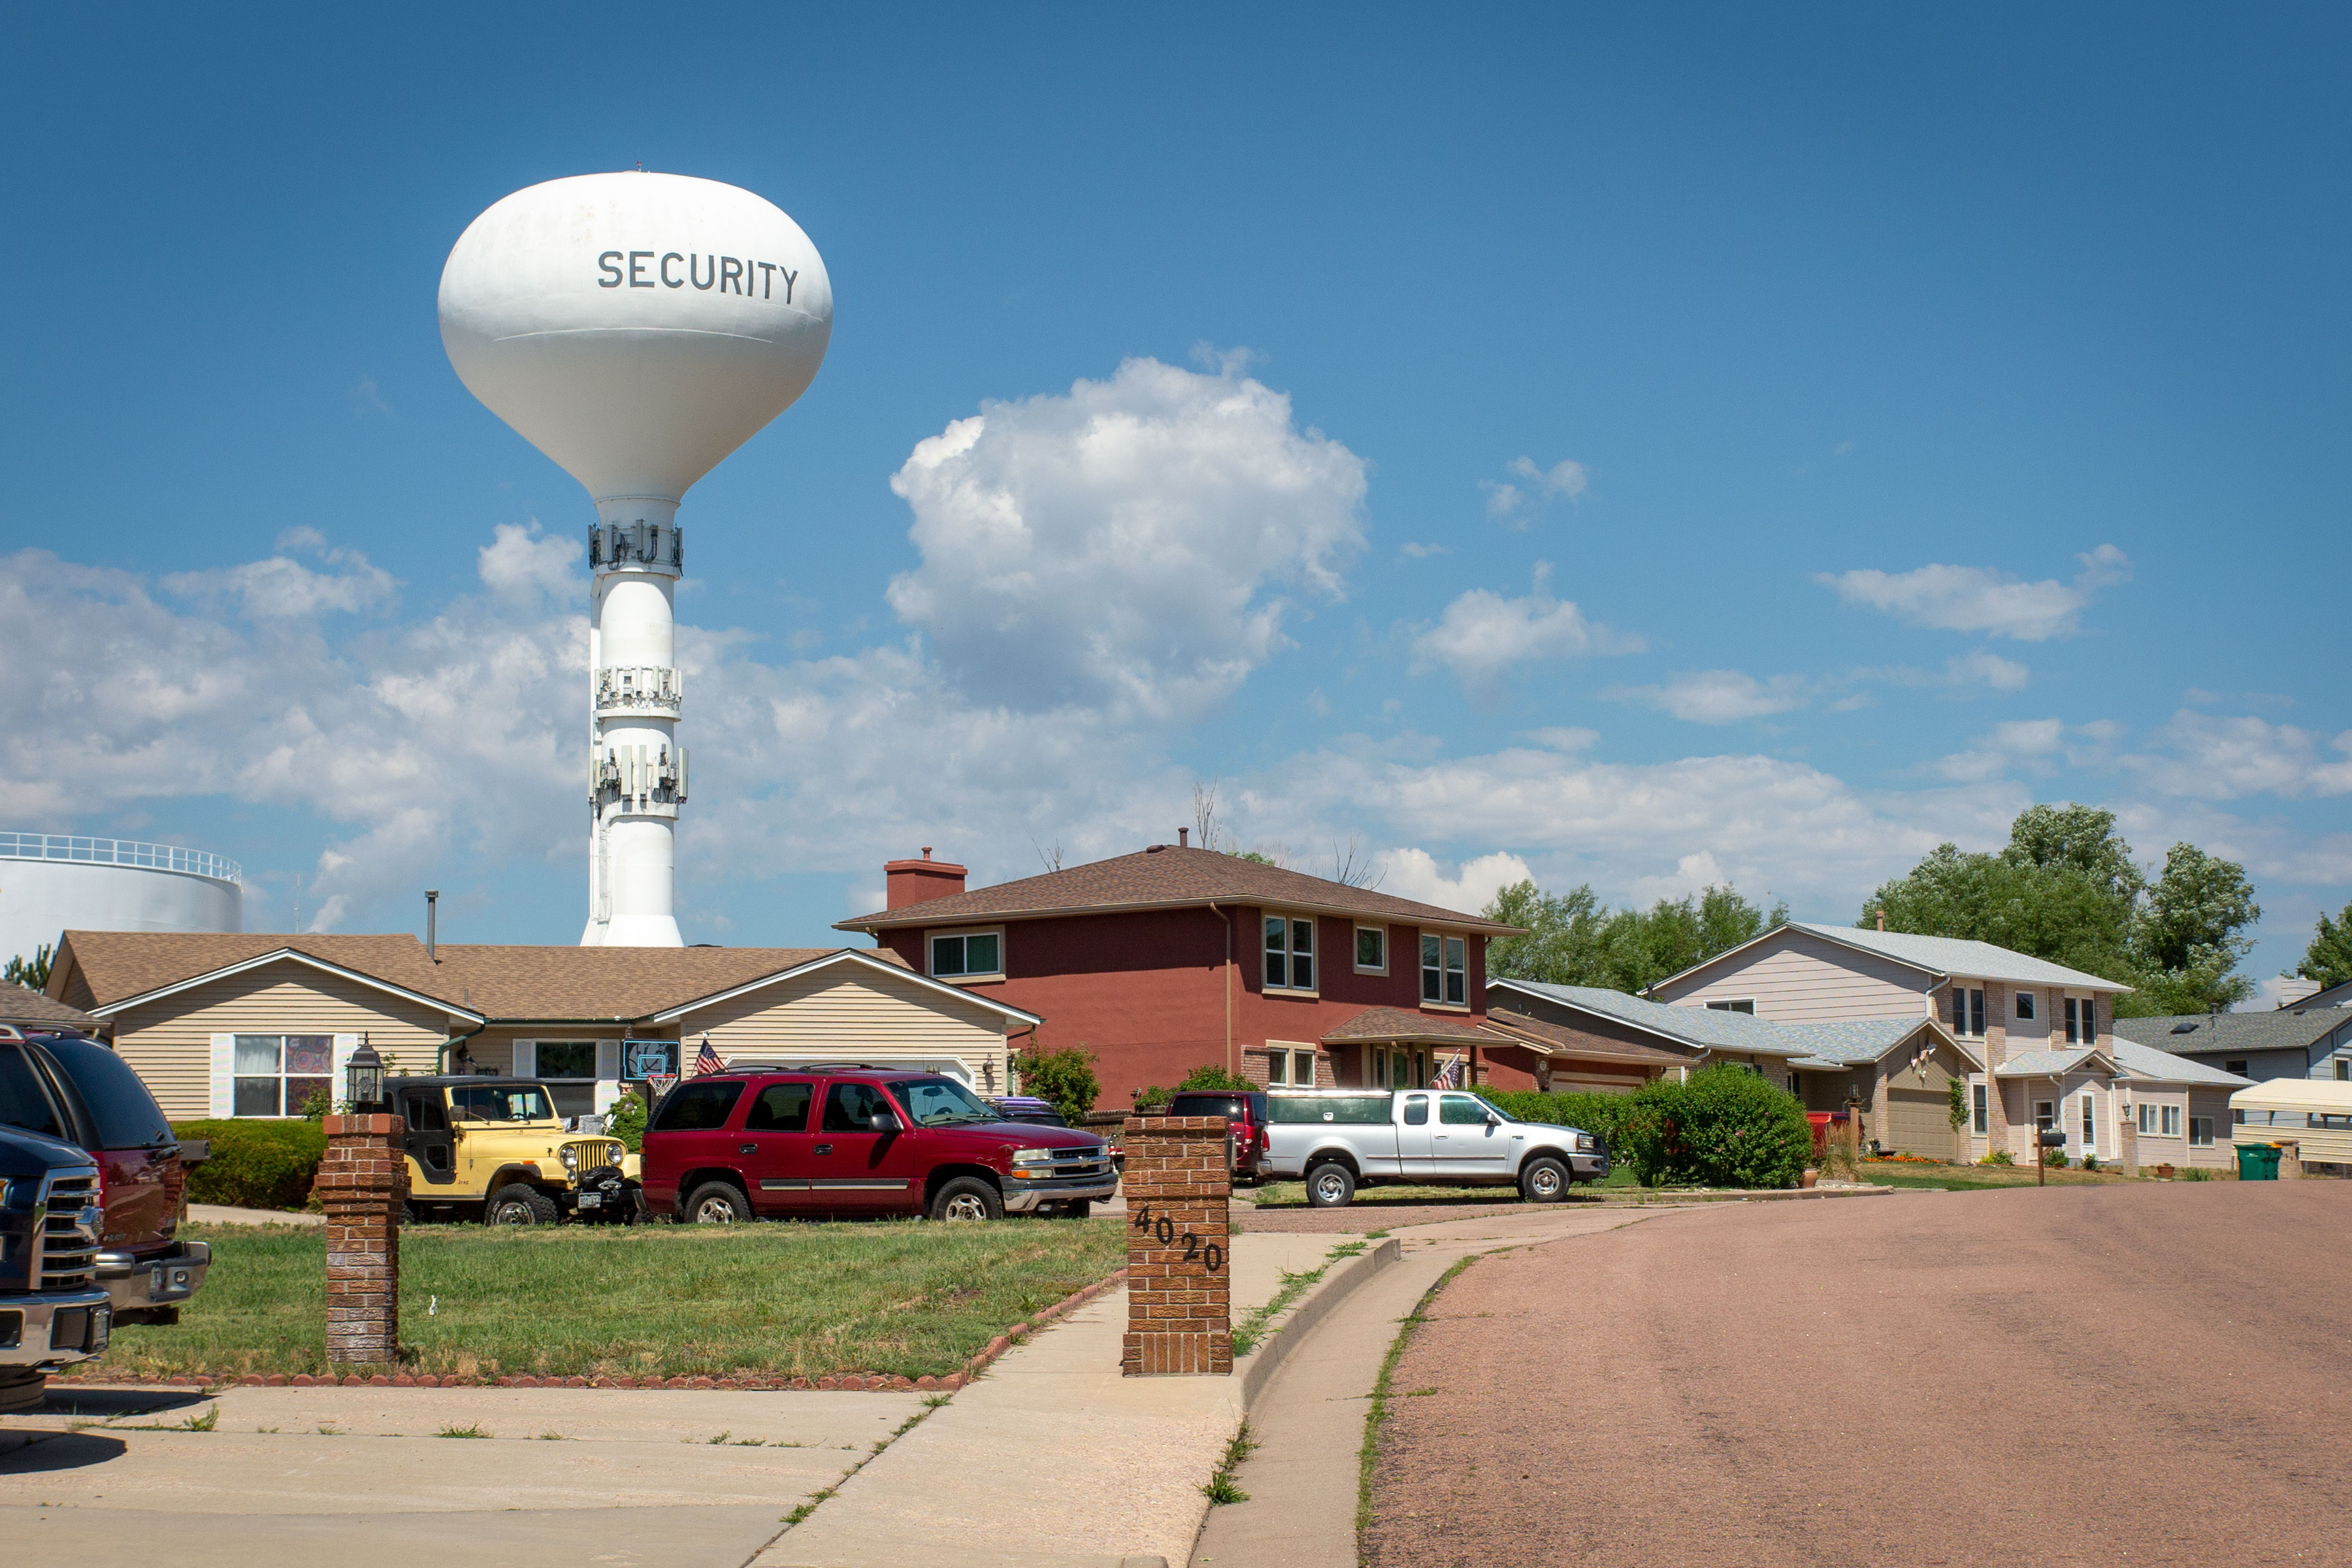 The Security water tower stands over the town, July 29, 2019. Until a new water treatment center is finished to appropriately filter PFAS, the local water district will continue to buy water from nearby Colorado Springs.